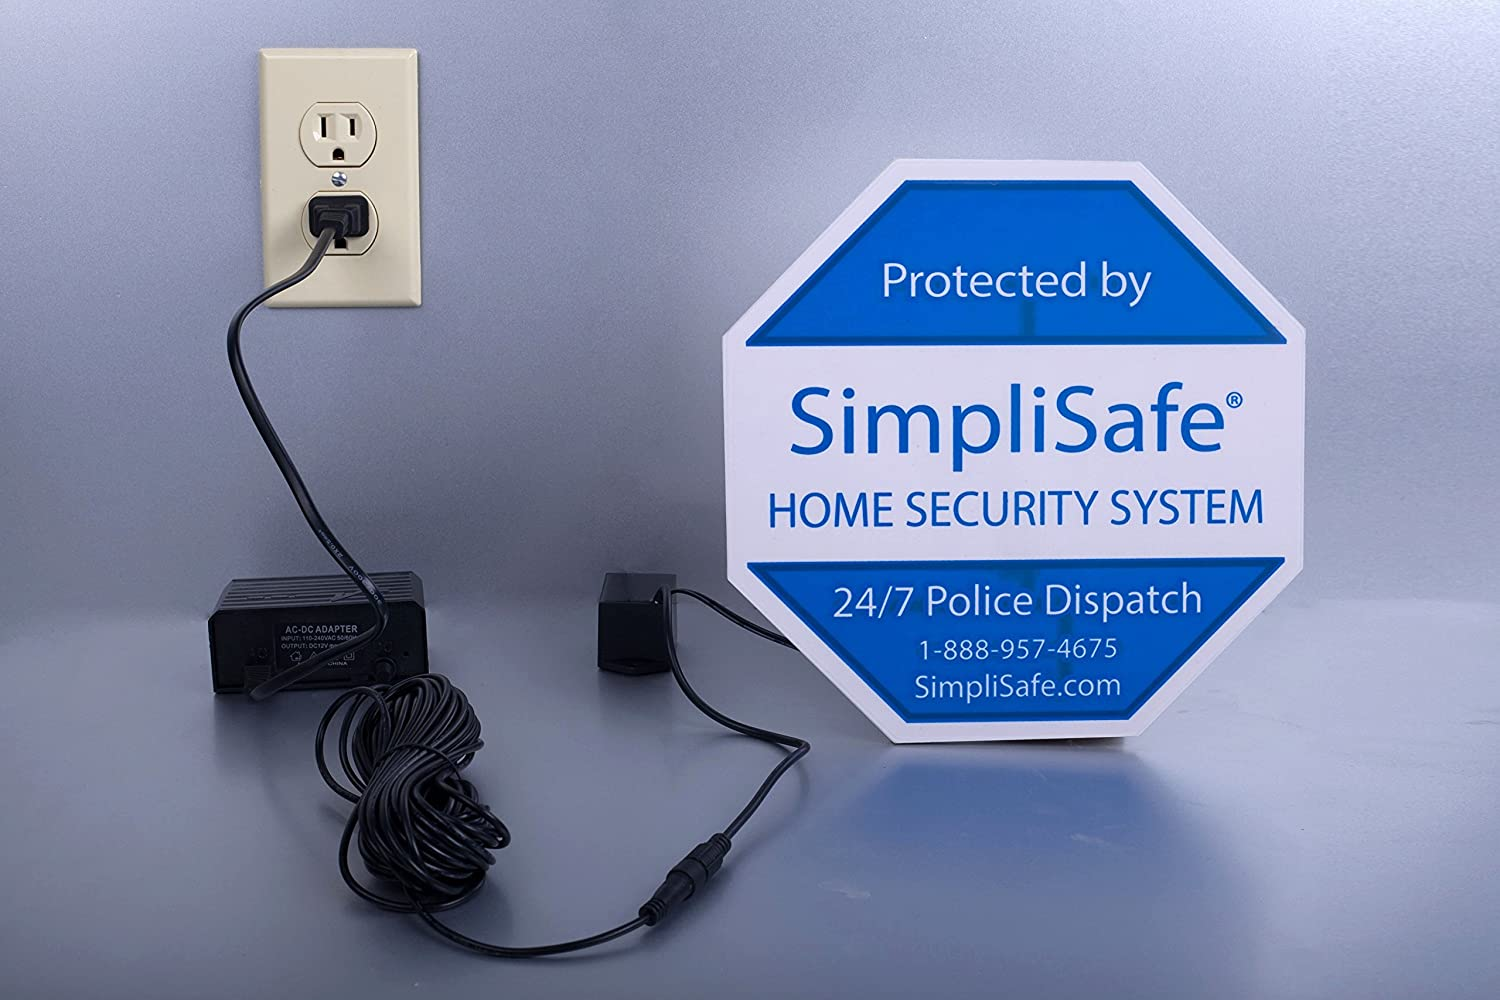 Self Illuminated Yard Sign For Simplisafe Home Security System Wiring Dummies Camera Photo